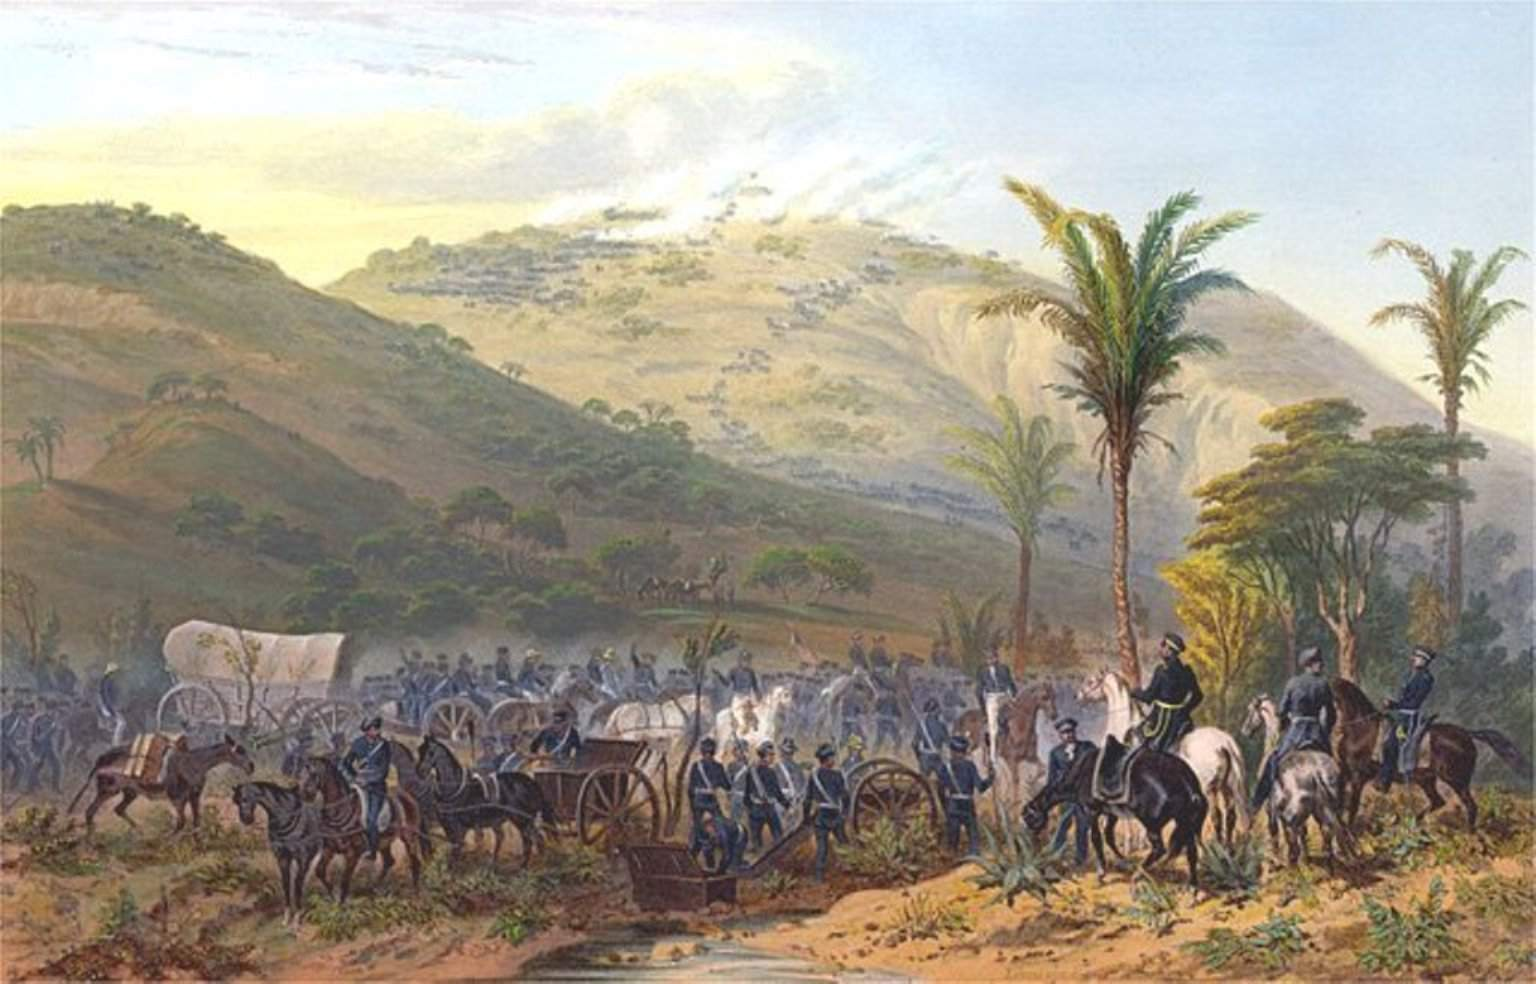 American troops in blue advance up a hill at the Battle of Cerro Gordo, 1847.